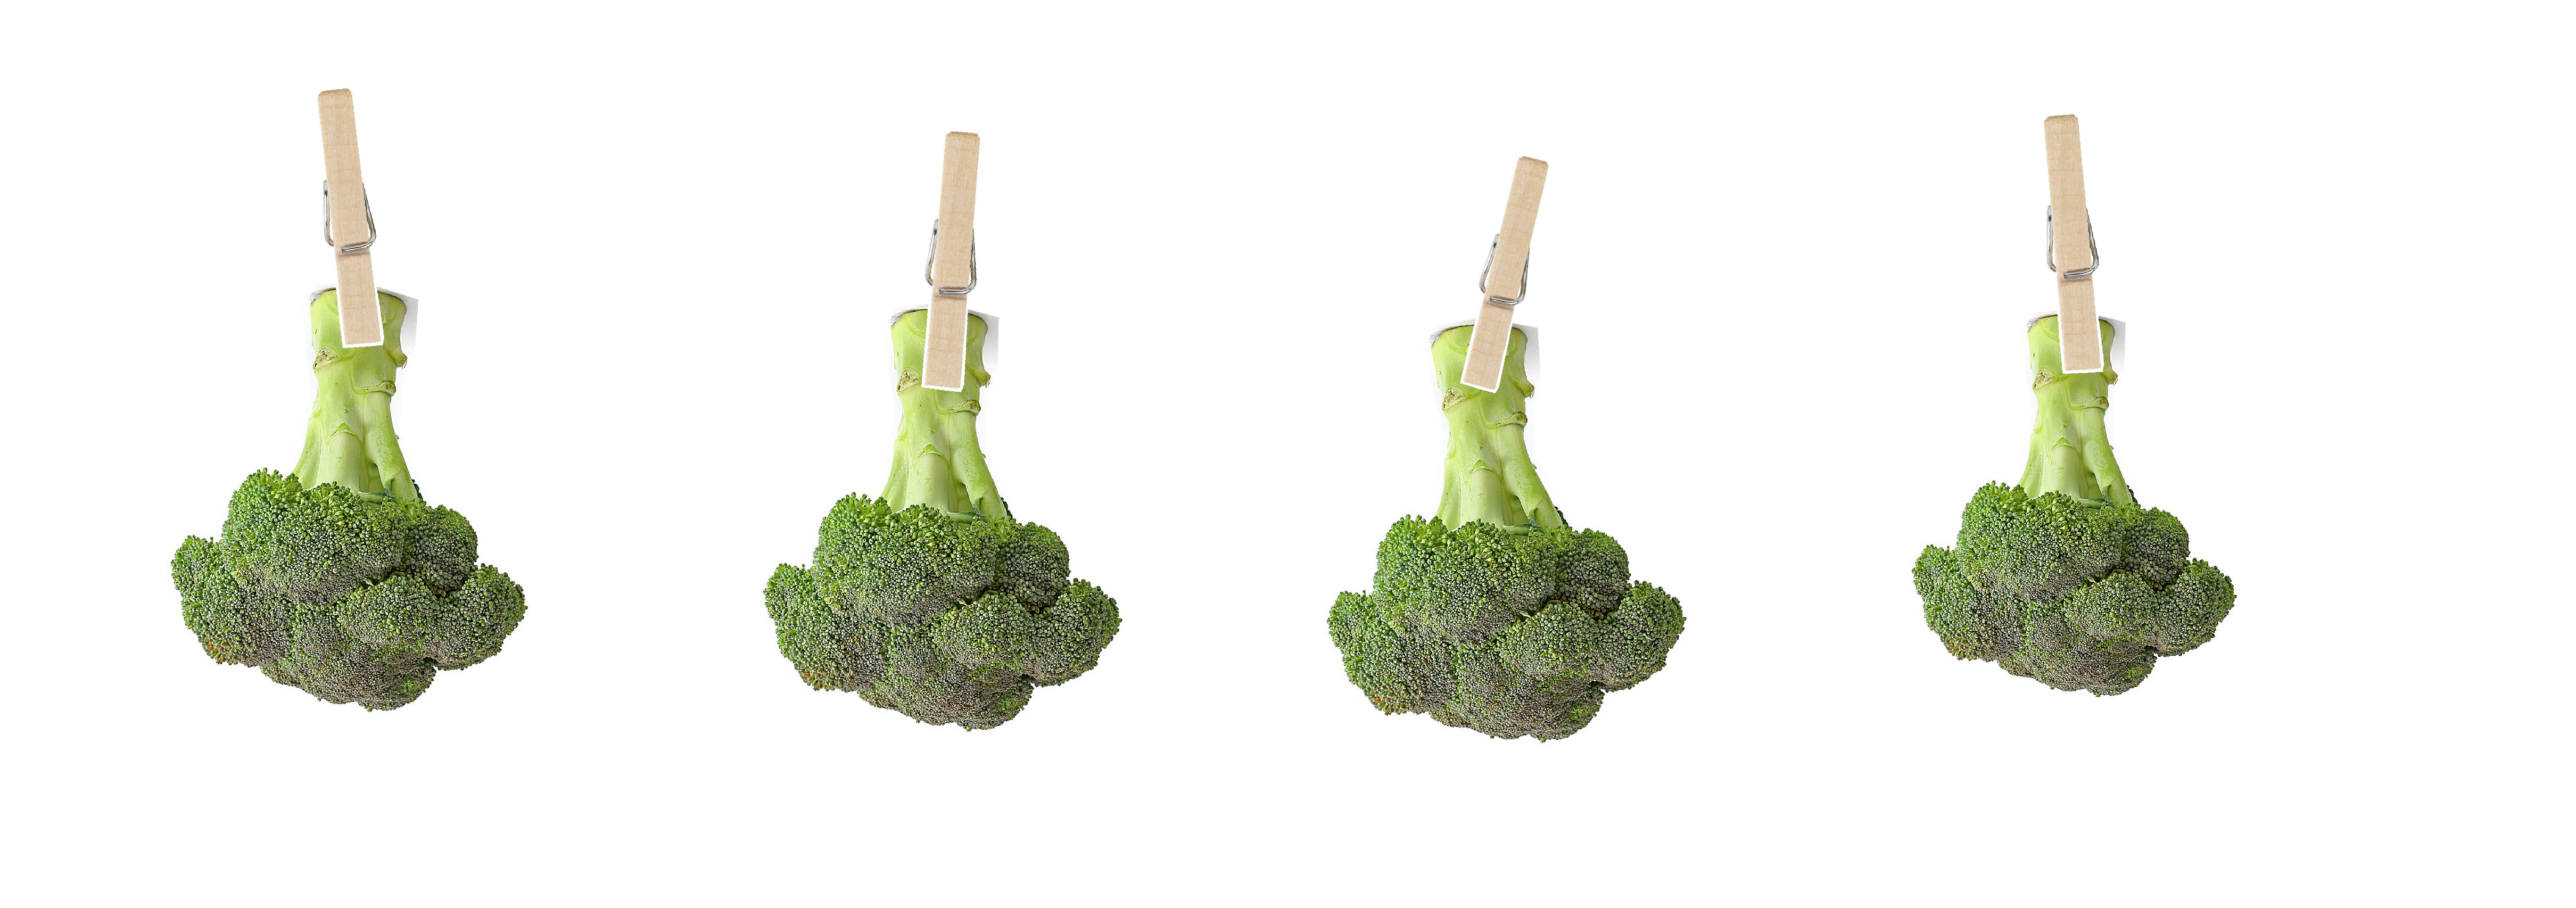 Broccoli hanging on a drying line